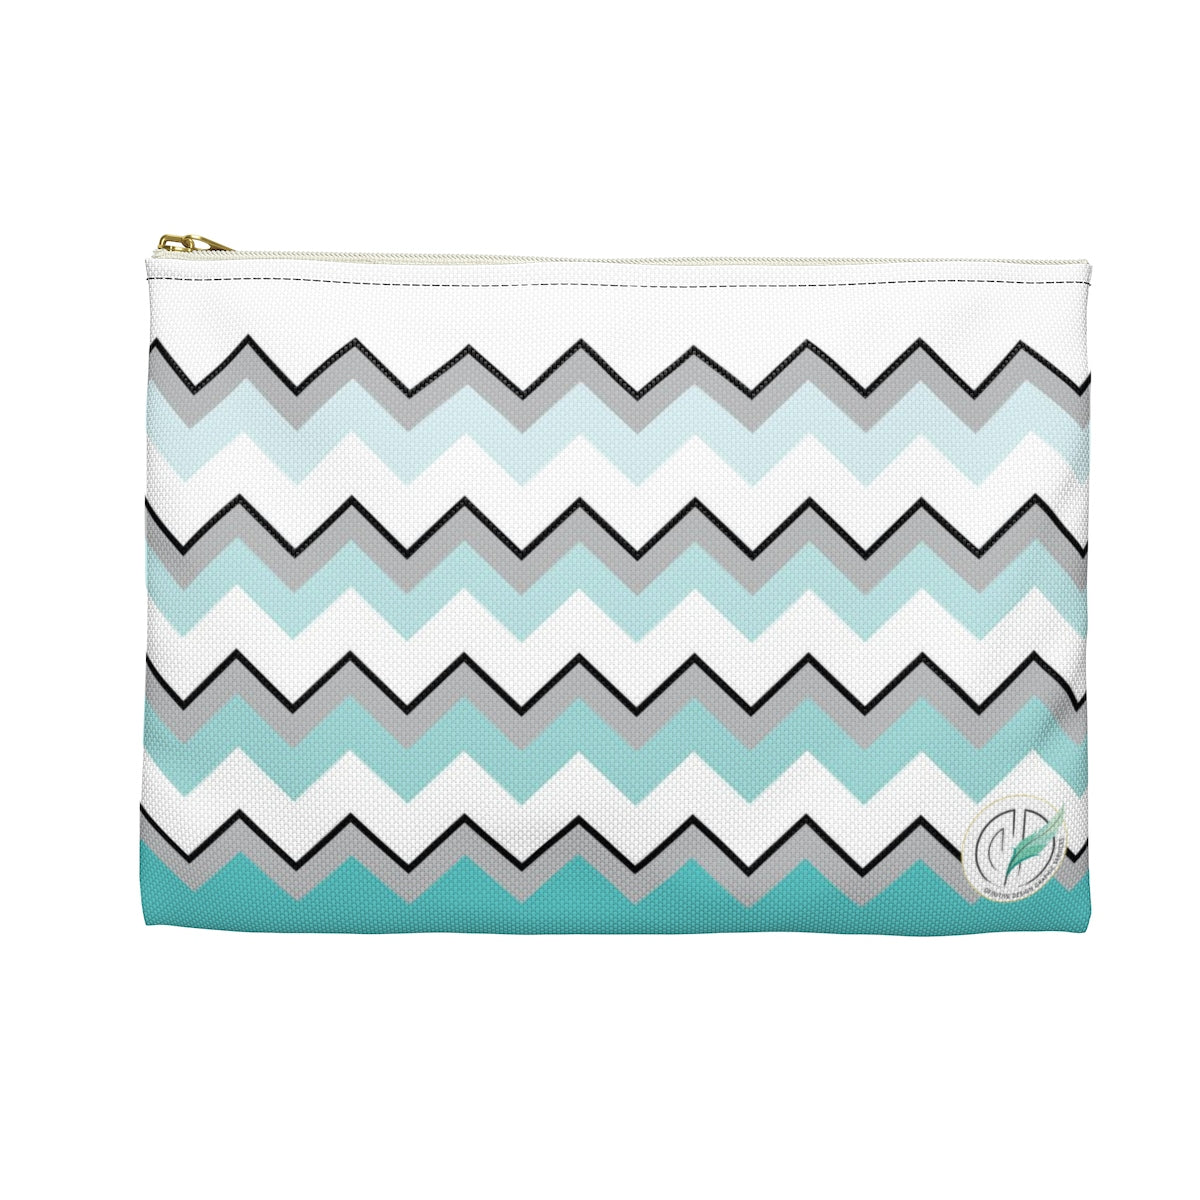 Ombre Teal Chevron Accessory Pouch